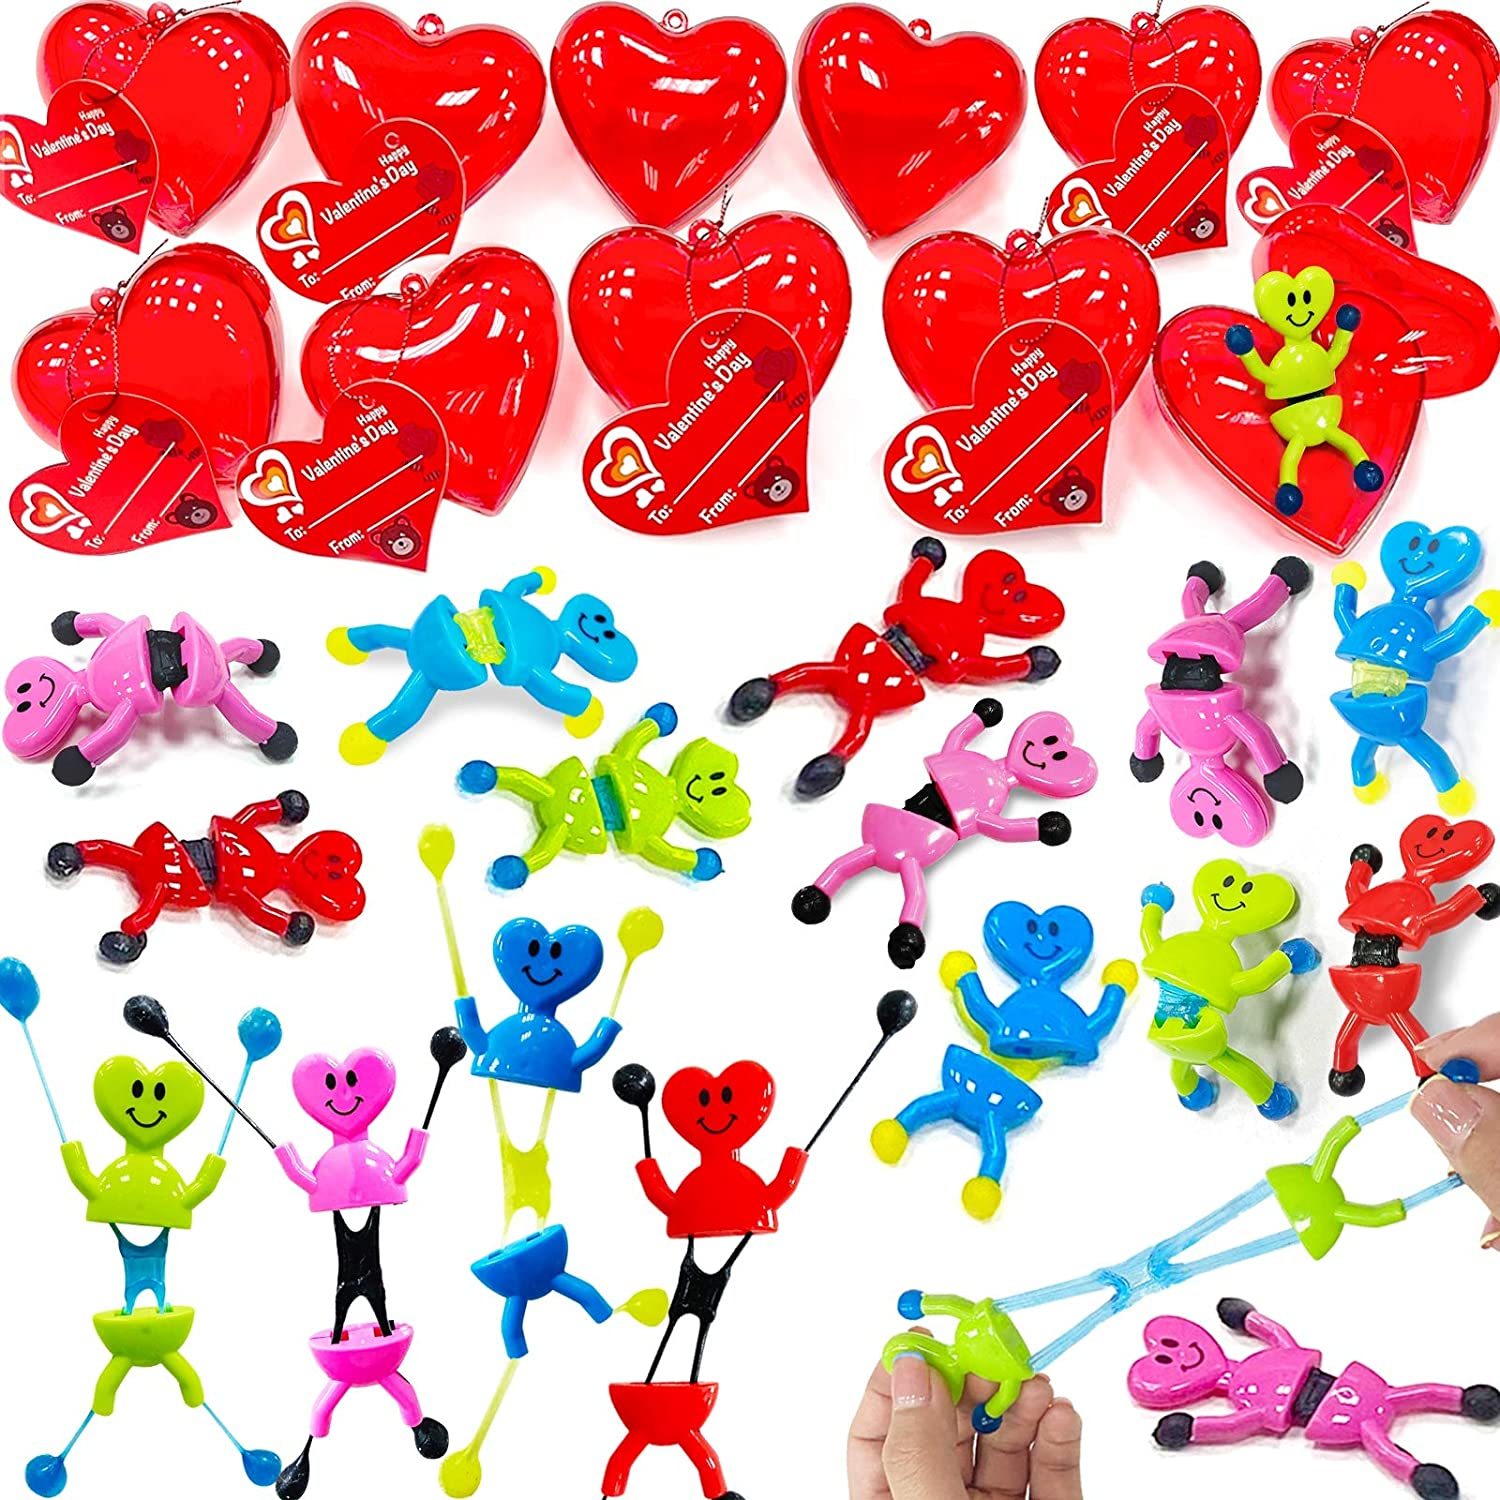 Valentine/'s Greeting Gifts Classroom Exchange Prizes JOYIN 26 Pieces Valentines Day Pre Filled Hearts with Valentine Cards Filled with Heart Building Blocks for Kids Party Favor